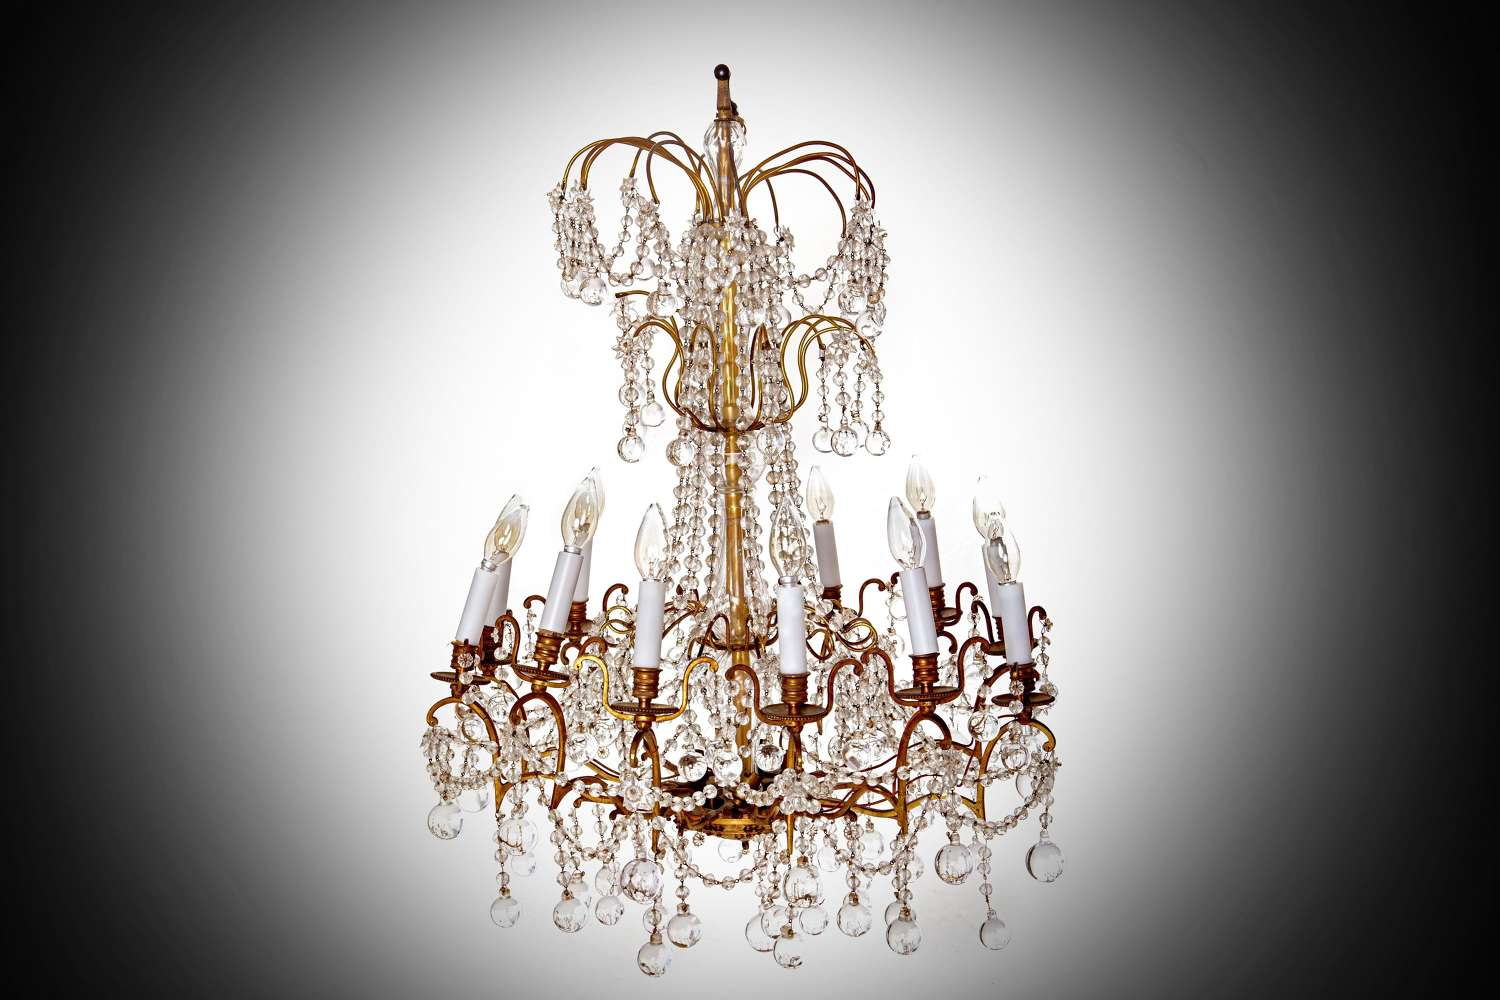 An early 19th century glass chandelier